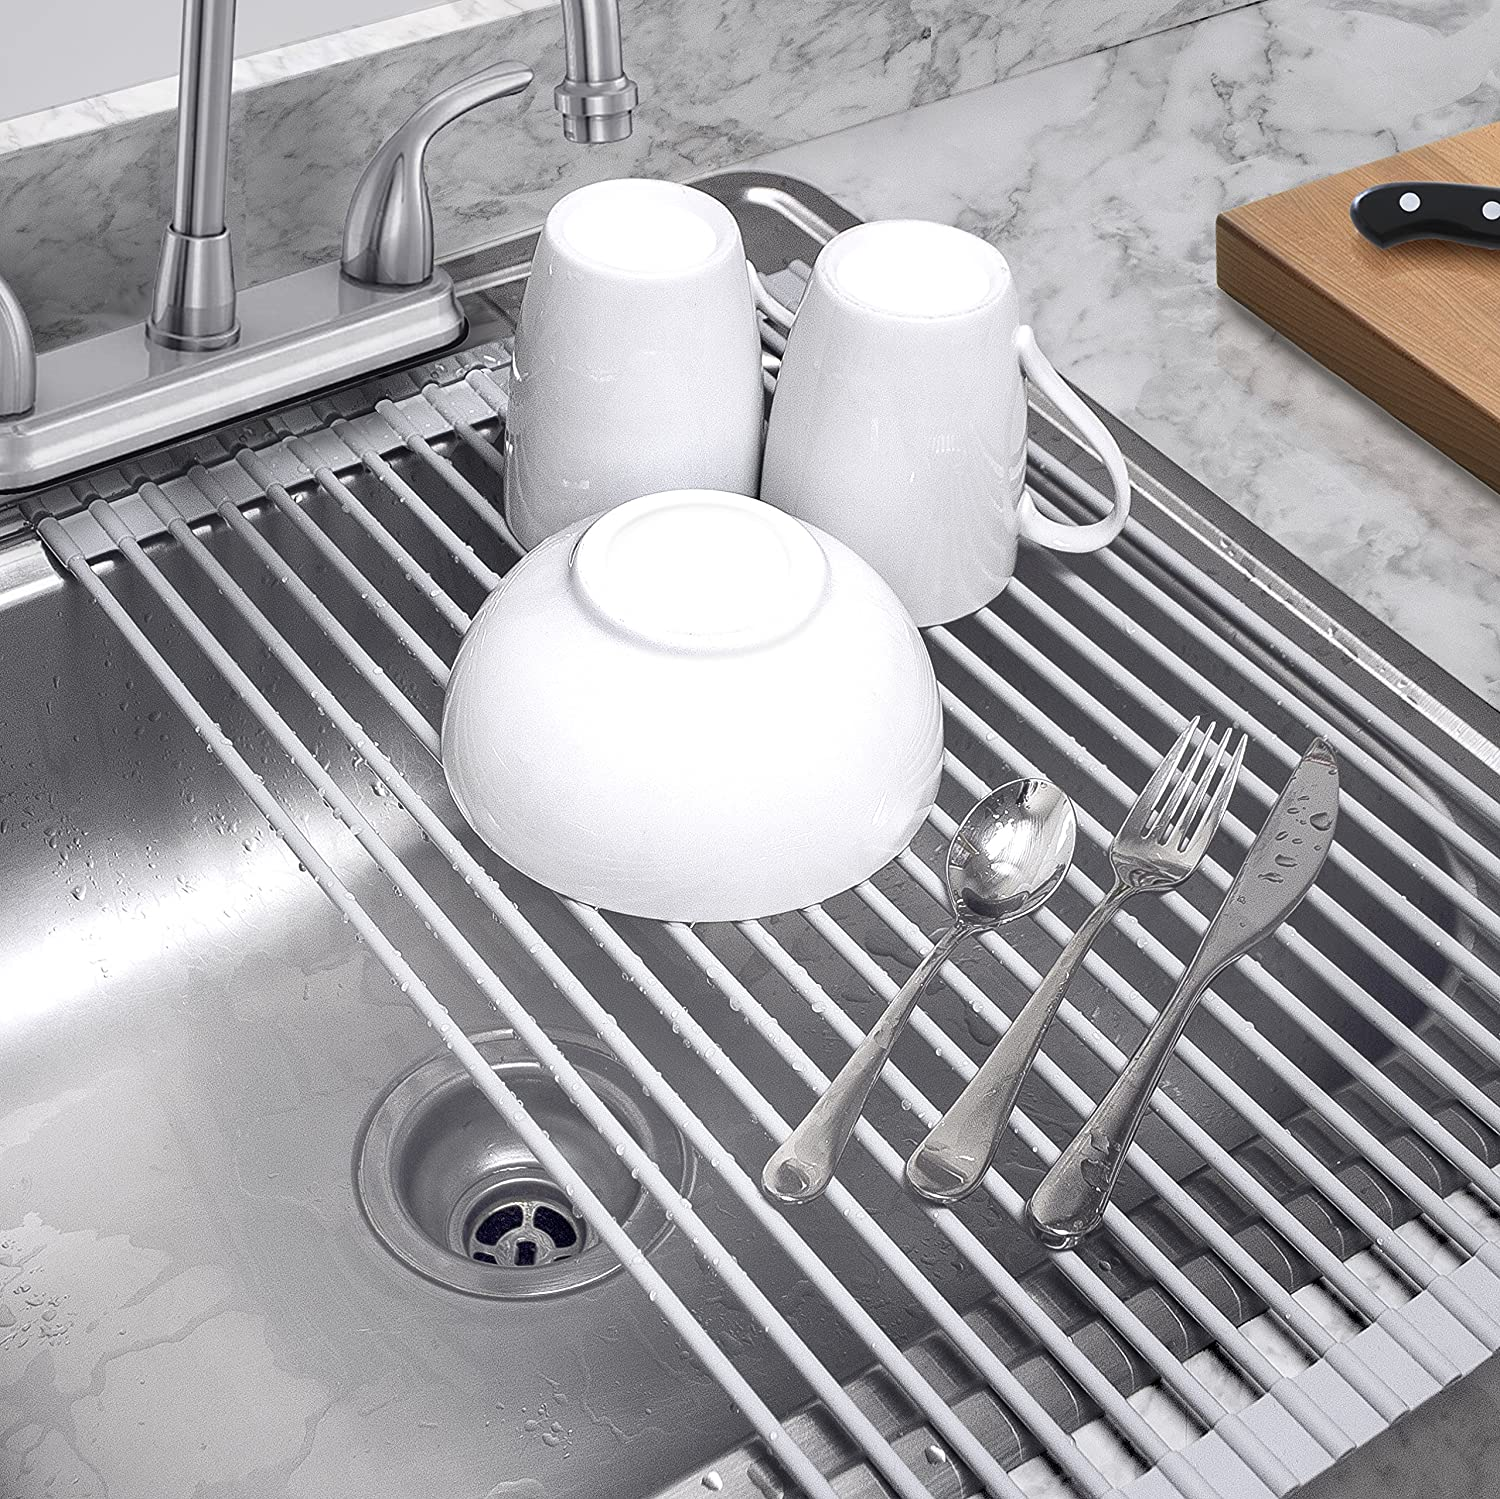 Over The Sink Drying Rack Amazoncom Sorbus Roll Up Dish Drying Rack Over The Sink Drying